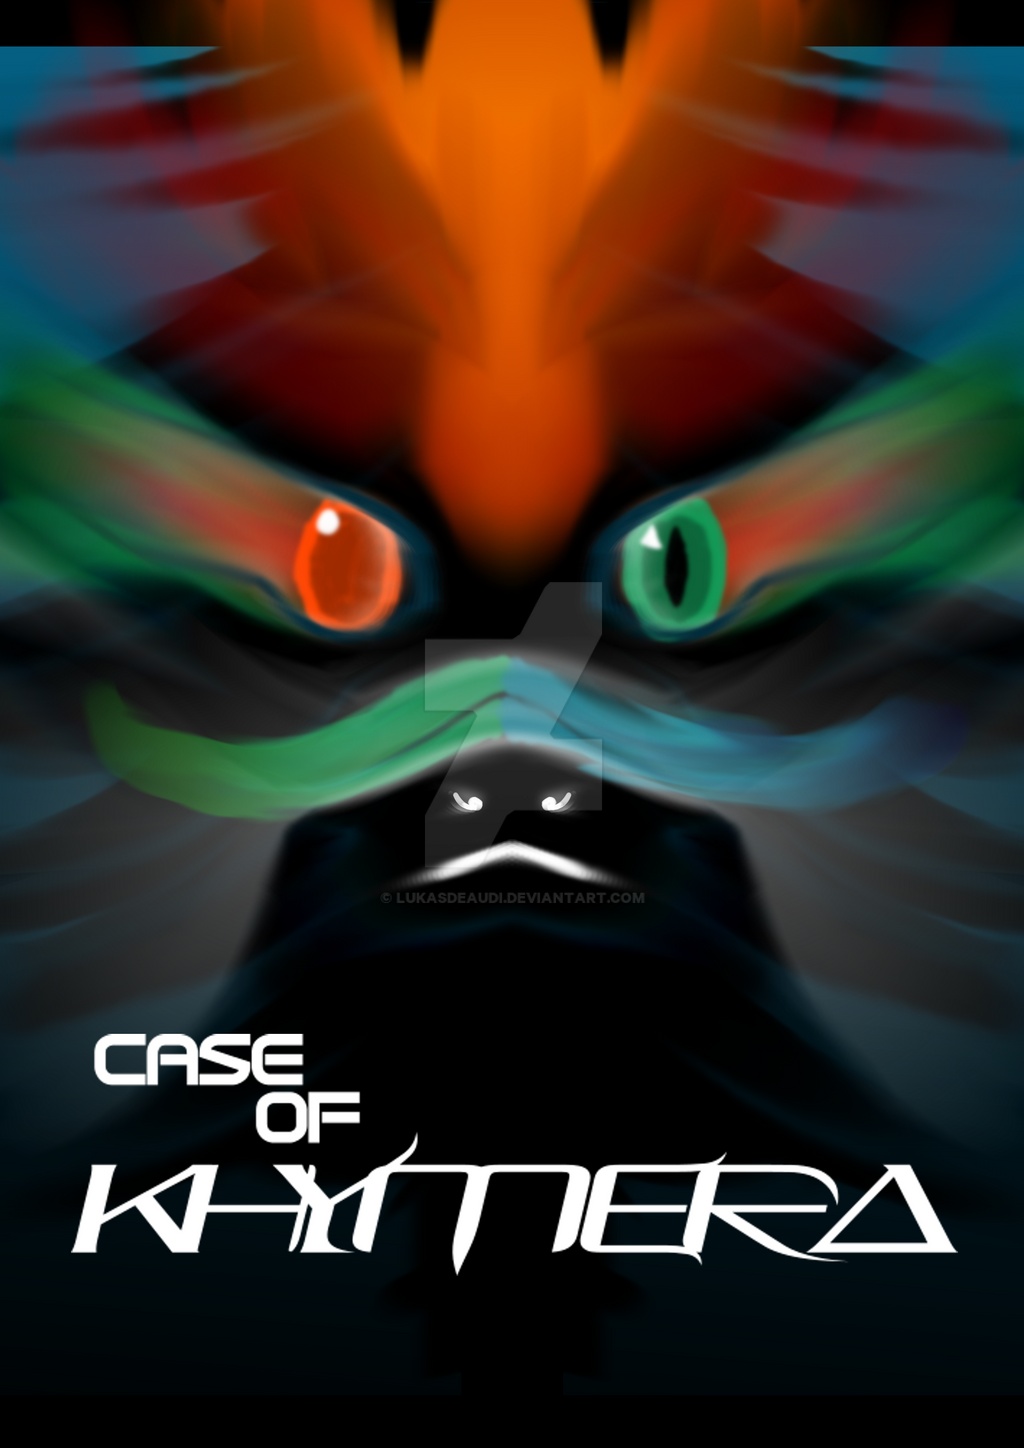 Case Of Khymera (Fanfiction cover art) by LukasDeAudi